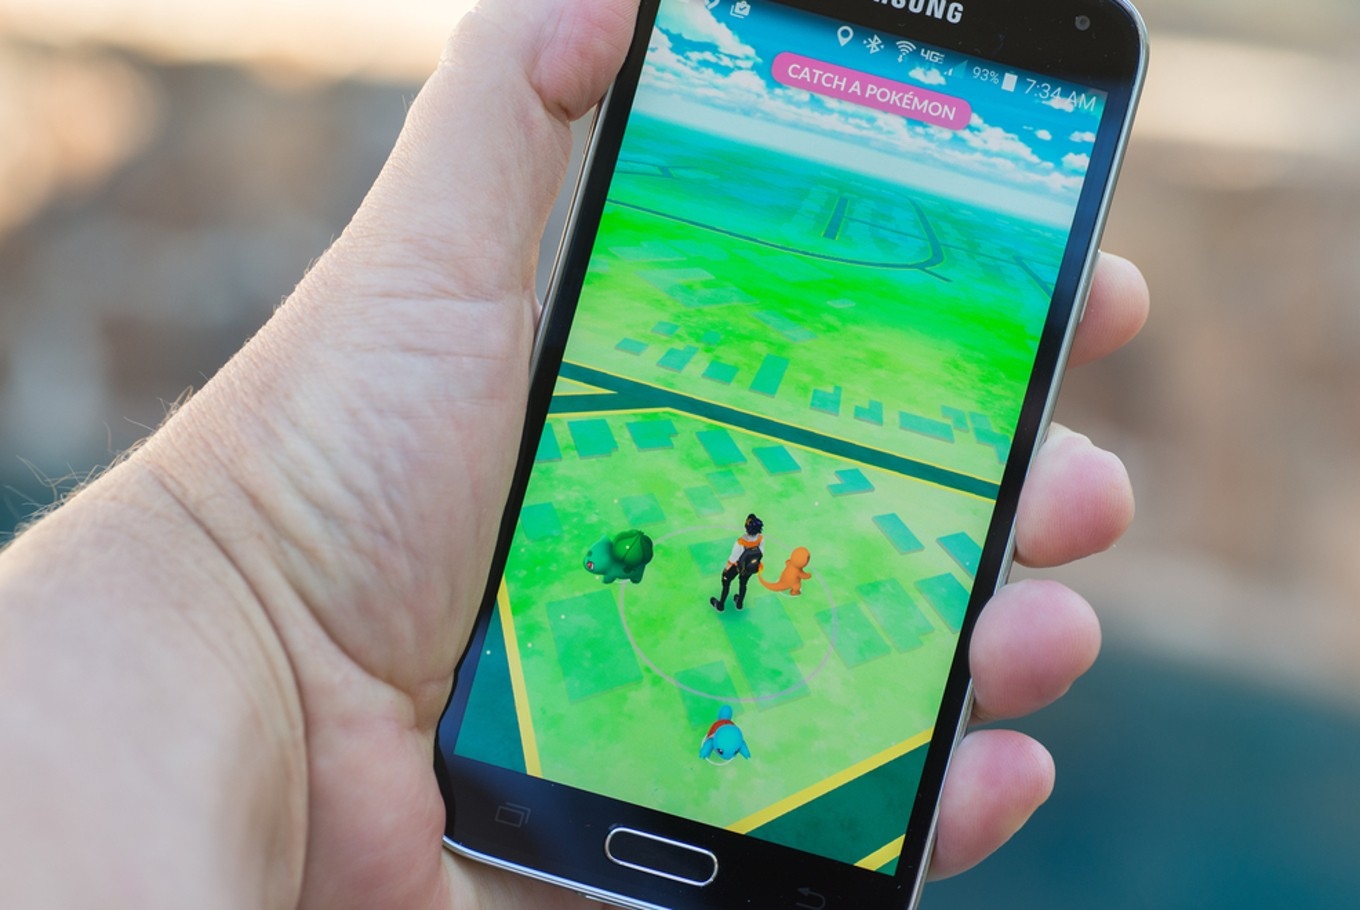 Southeast Asia may have to wait for Pokémon Go release